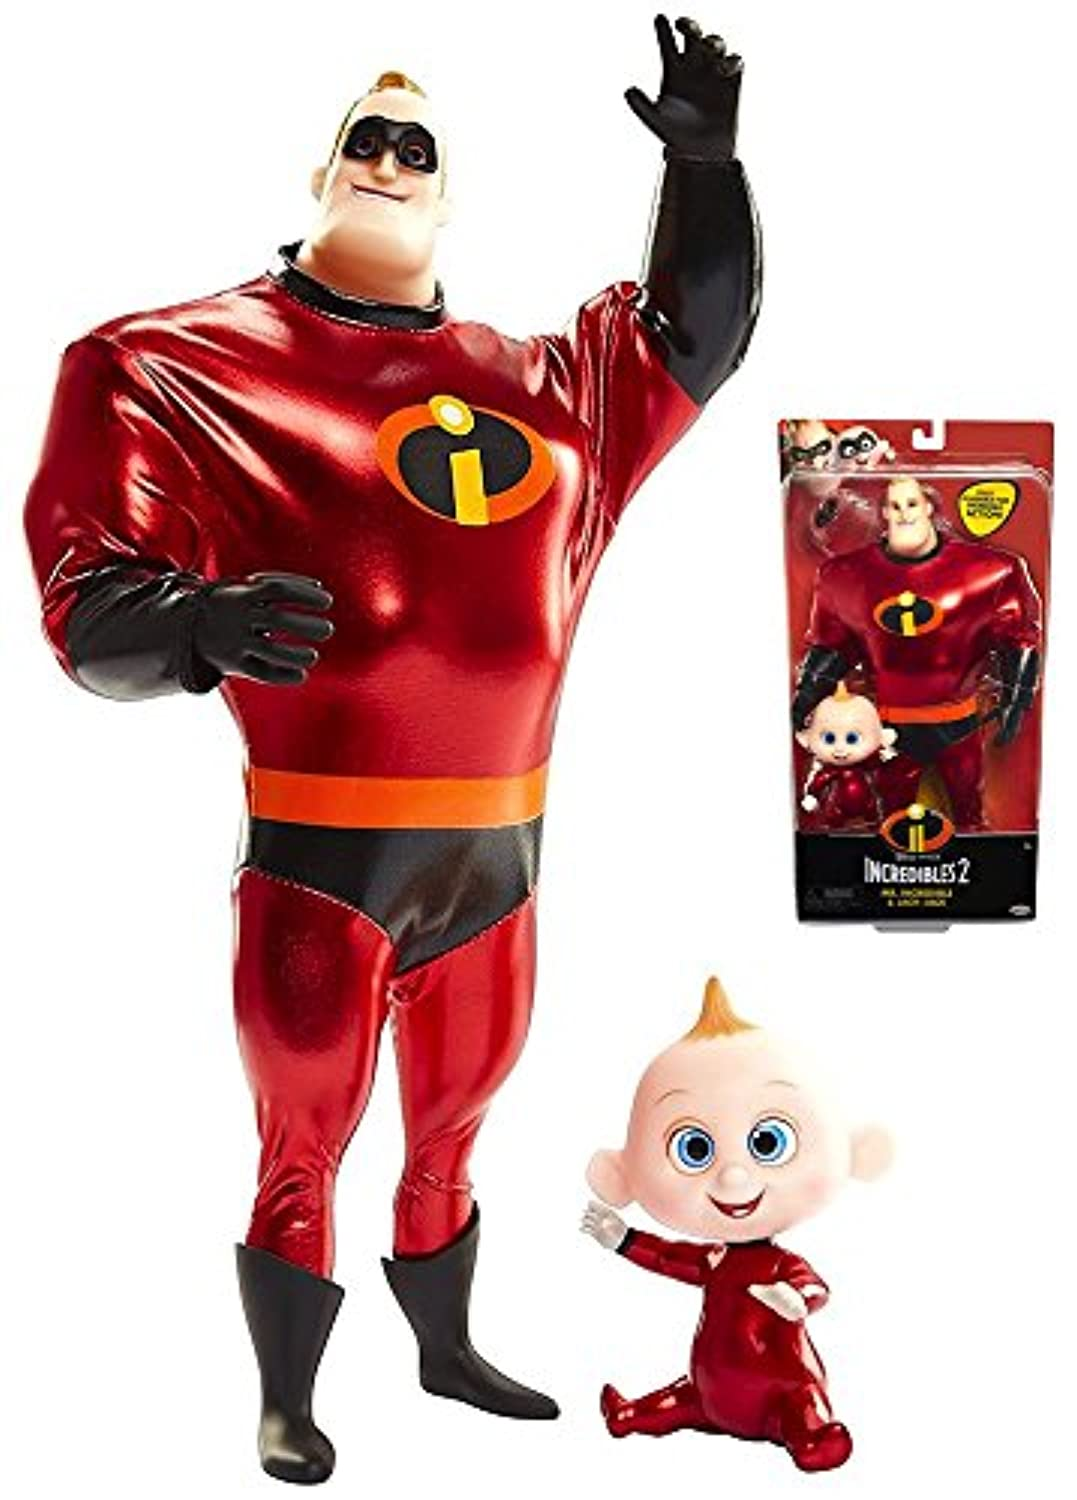 The Incredibles 2 Mr. Incredible & Jack Jack Dolls 30cm Scale